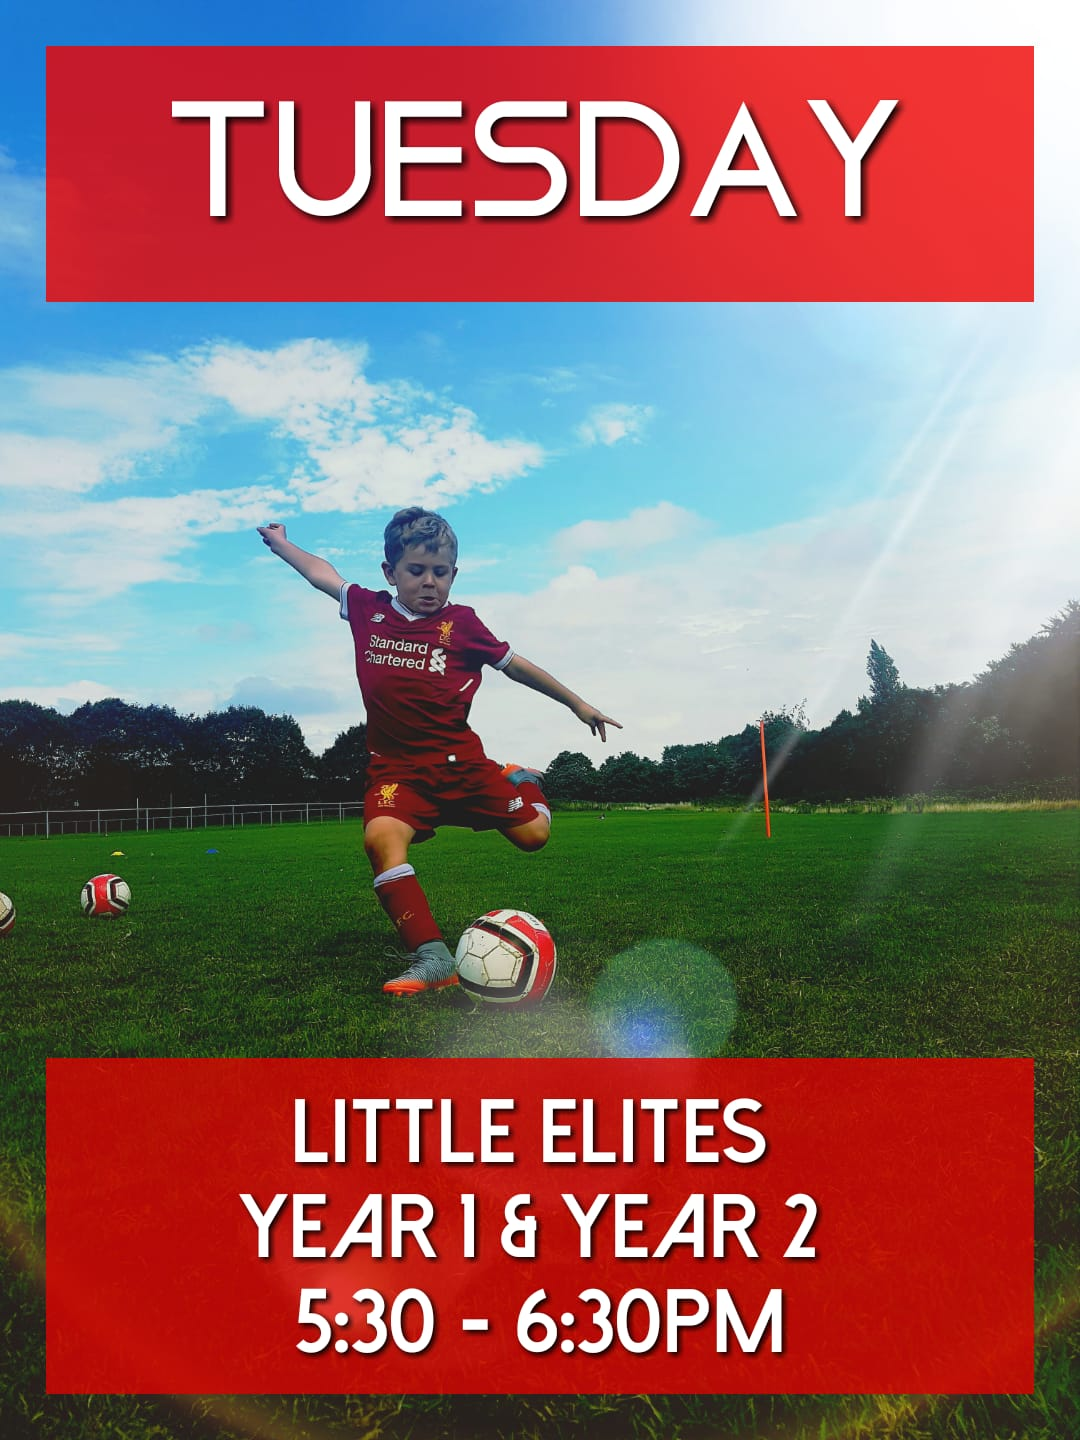 Little Elites football coaching Rhys Jones Community Centre Liverpool